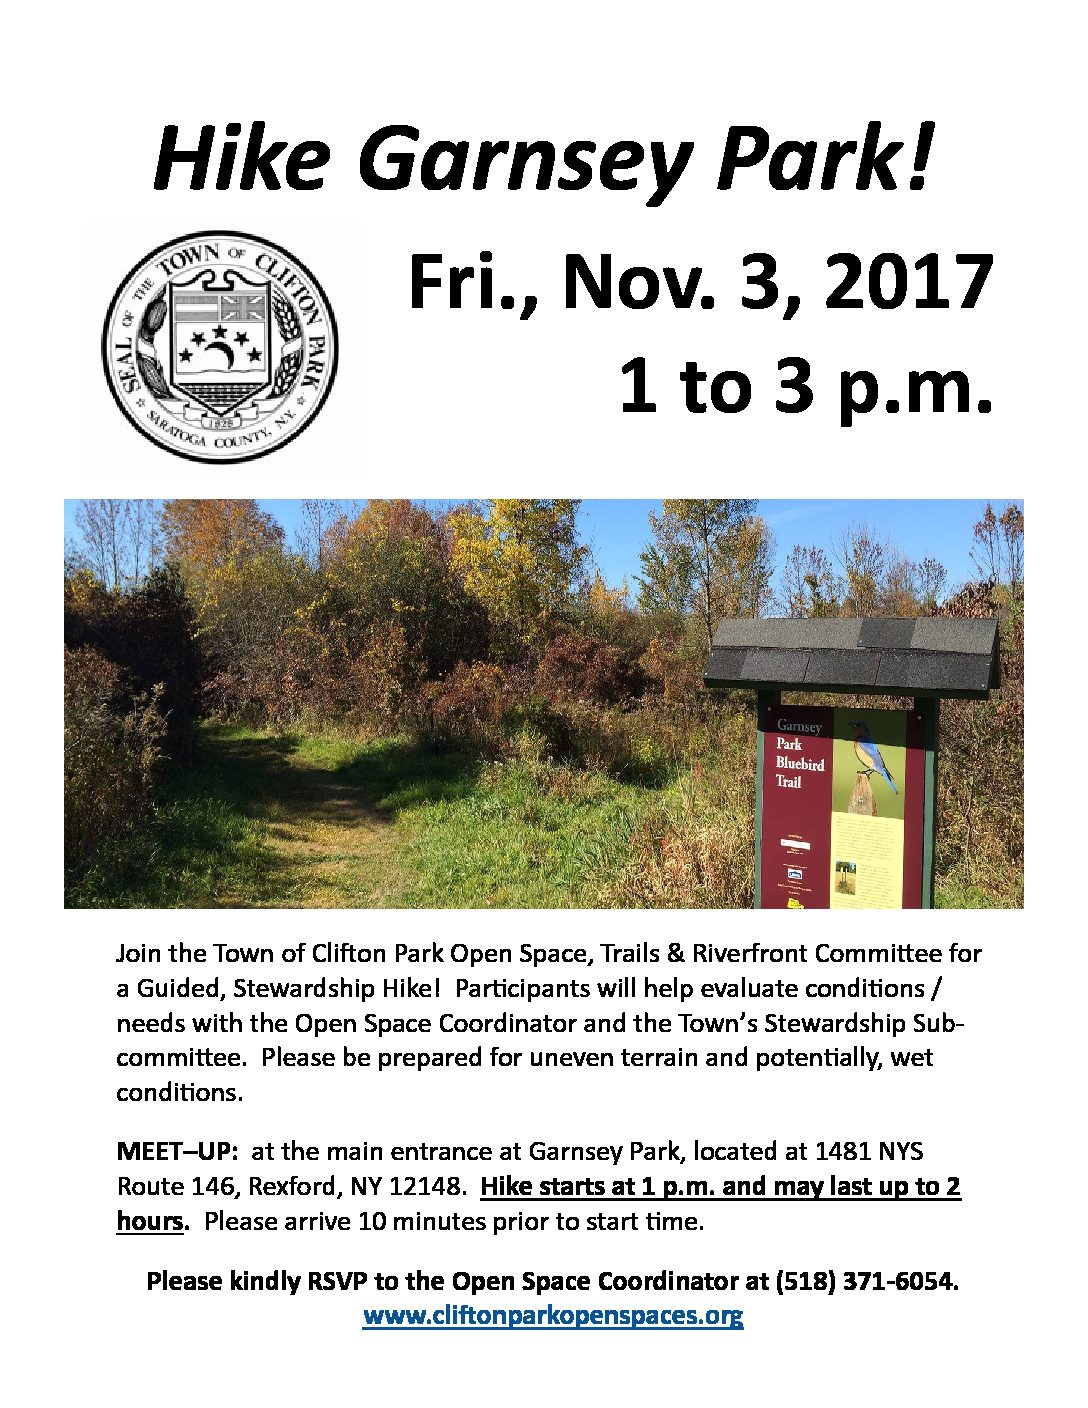 Hike Garnsey Park on Nov. 3